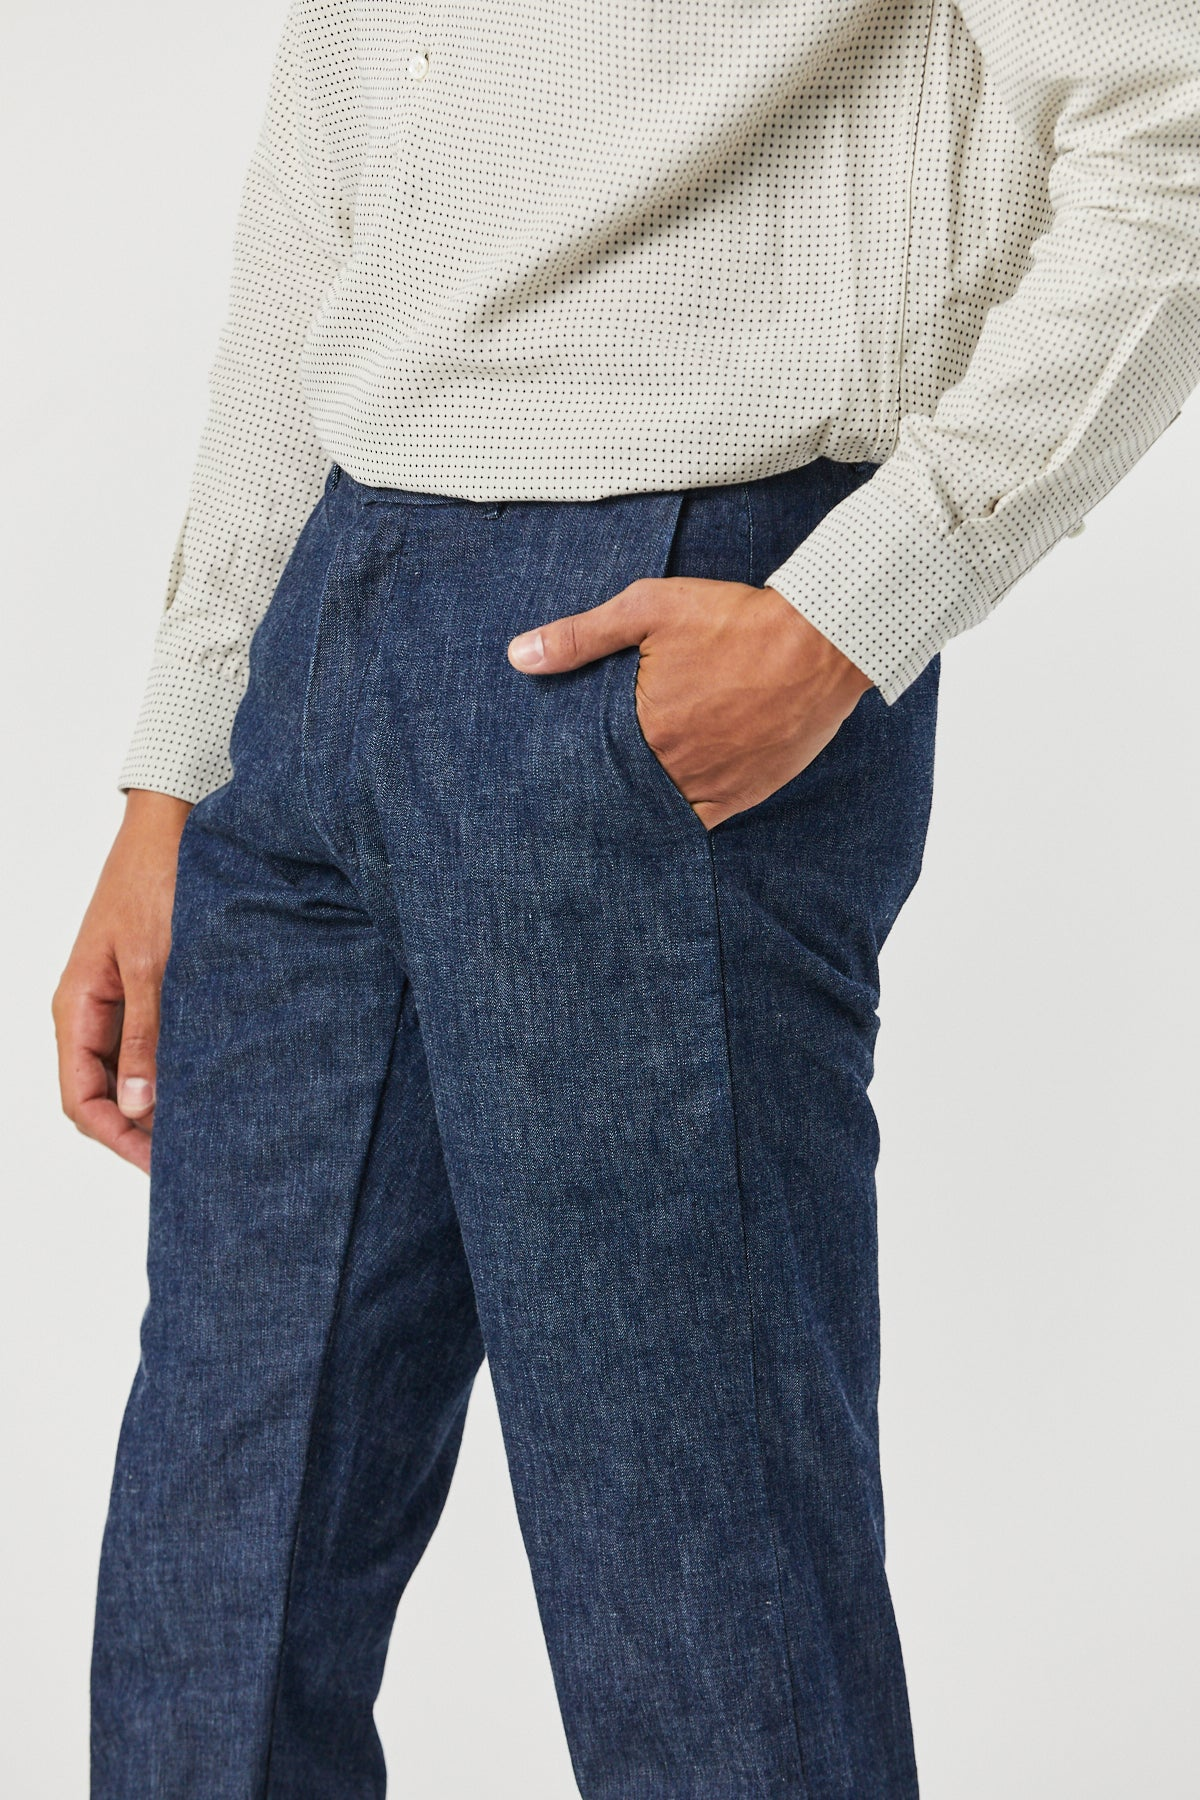 BRIGGS TROUSER IN SELVEDGE DENIM - Fortune Goods